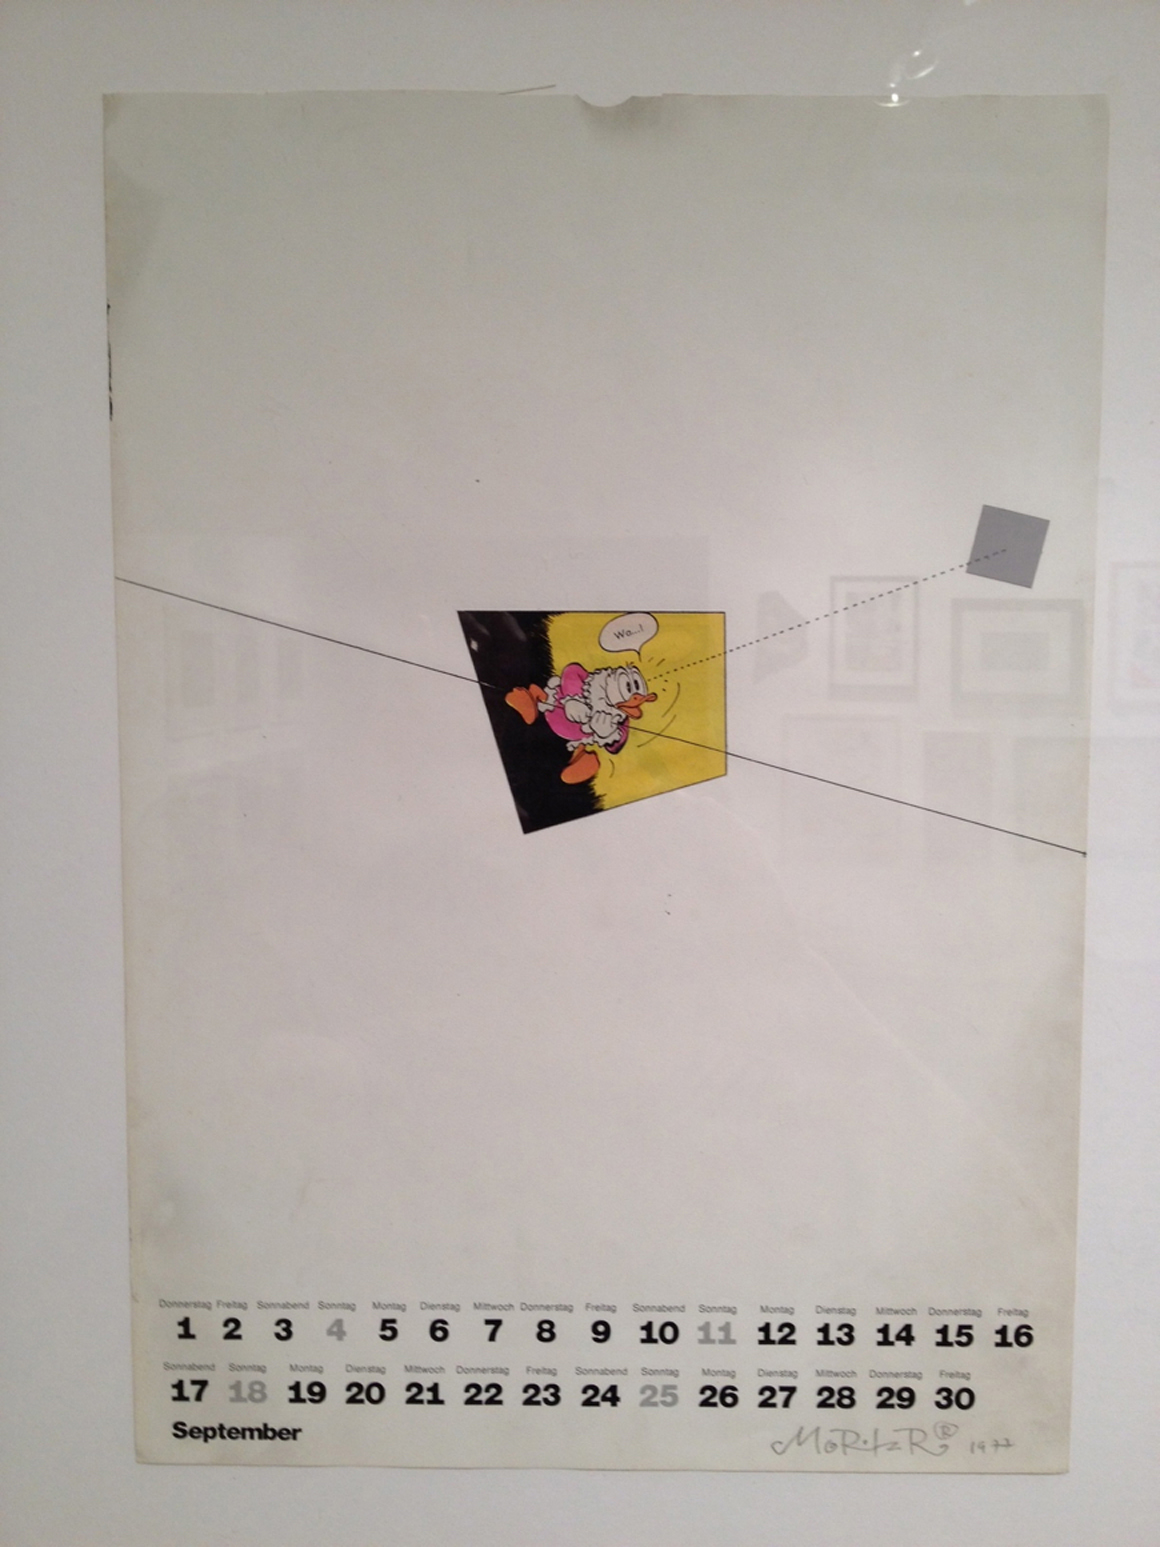 """<p><span class=""""name"""">Moritz Reichelt</span><br><em>Calendar 1977 September</em><span class='media'>collage</span>16 x 11.25 in (40.6 x 28.6 cm)<br>20.75 x 16.75 in (52.7 x 42.5 cm) Framed (framed)<br>1977<br><a class='inquire' href='mailto:info@gildargallery.com?subject=Artwork Inquiry MREI0017&body=I am interested in finding out more about Calendar 1977 September by Moritz Reichelt'>Inquire</a></p>"""